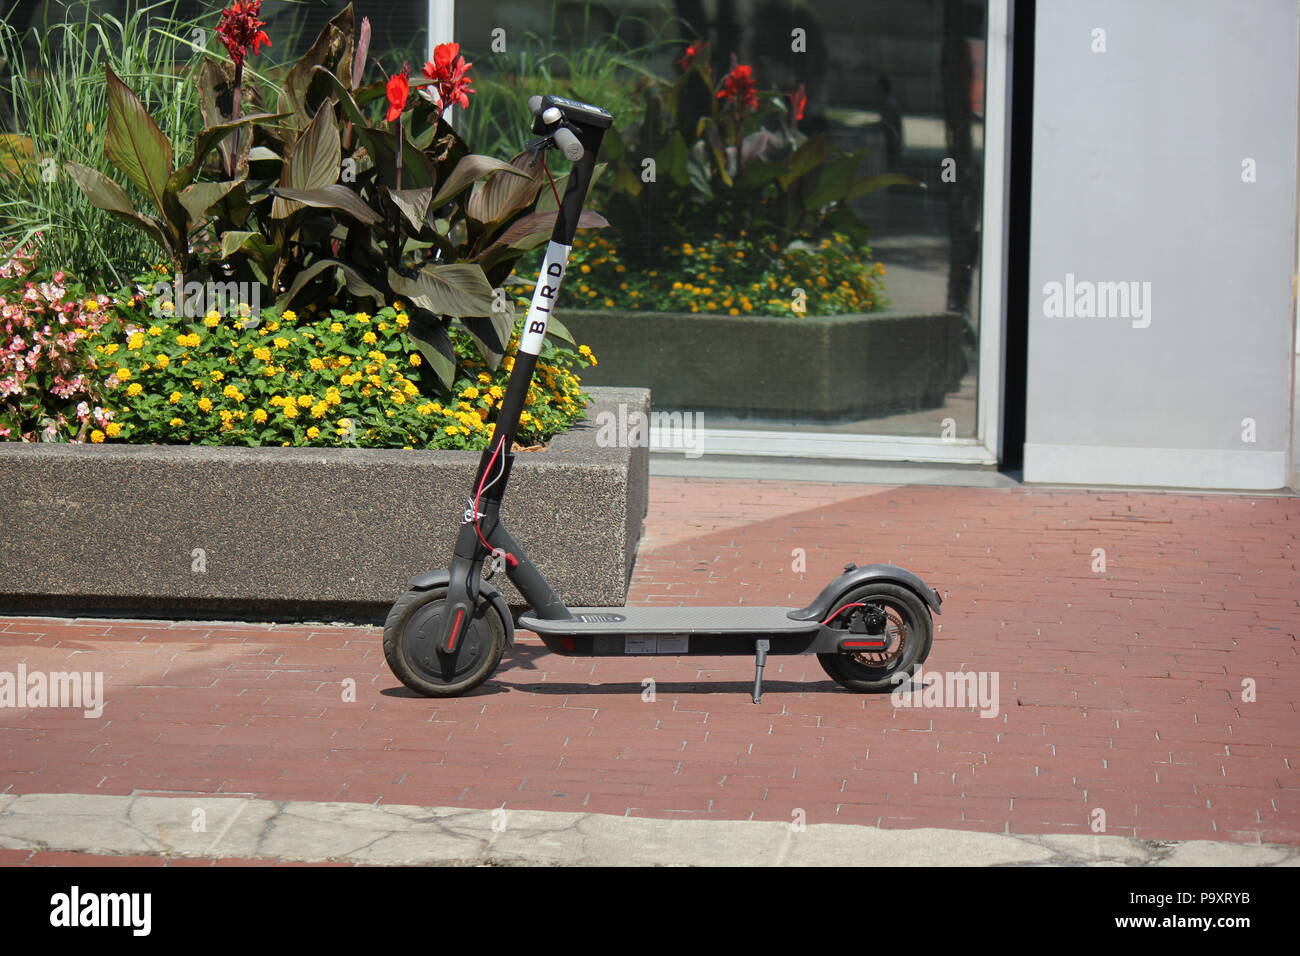 Controversial electric dockless Bird scooter parked in the Monument Circle in Indianapolis, Indiana. - Stock Image